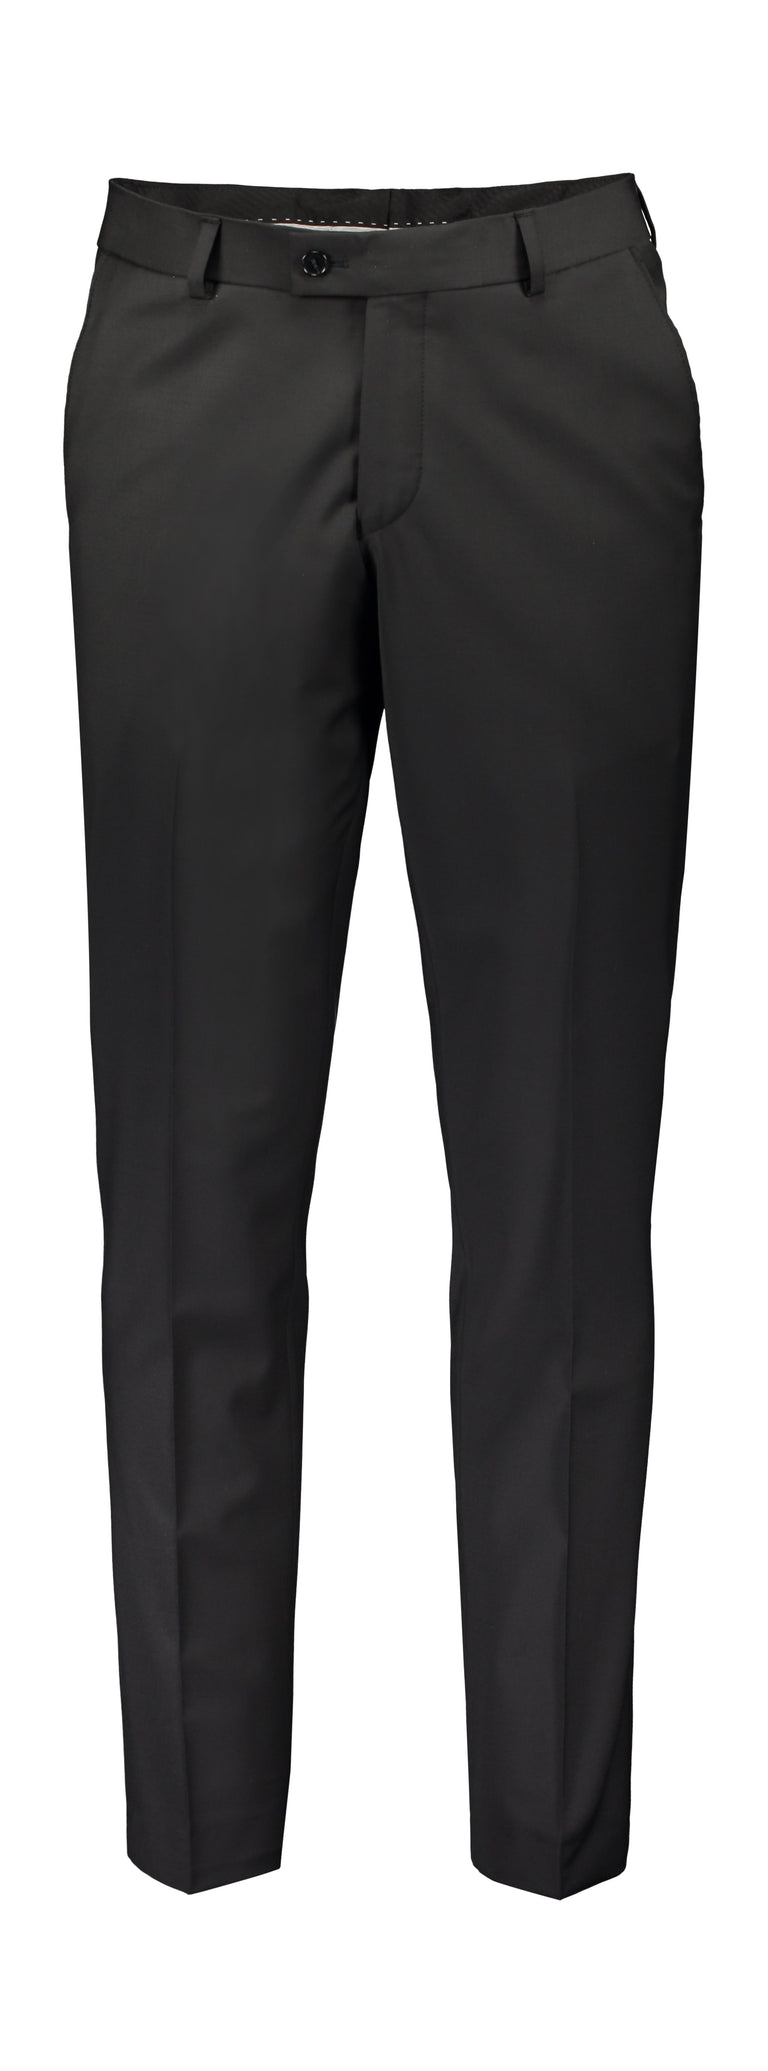 Copy of Athlete fit trousers black